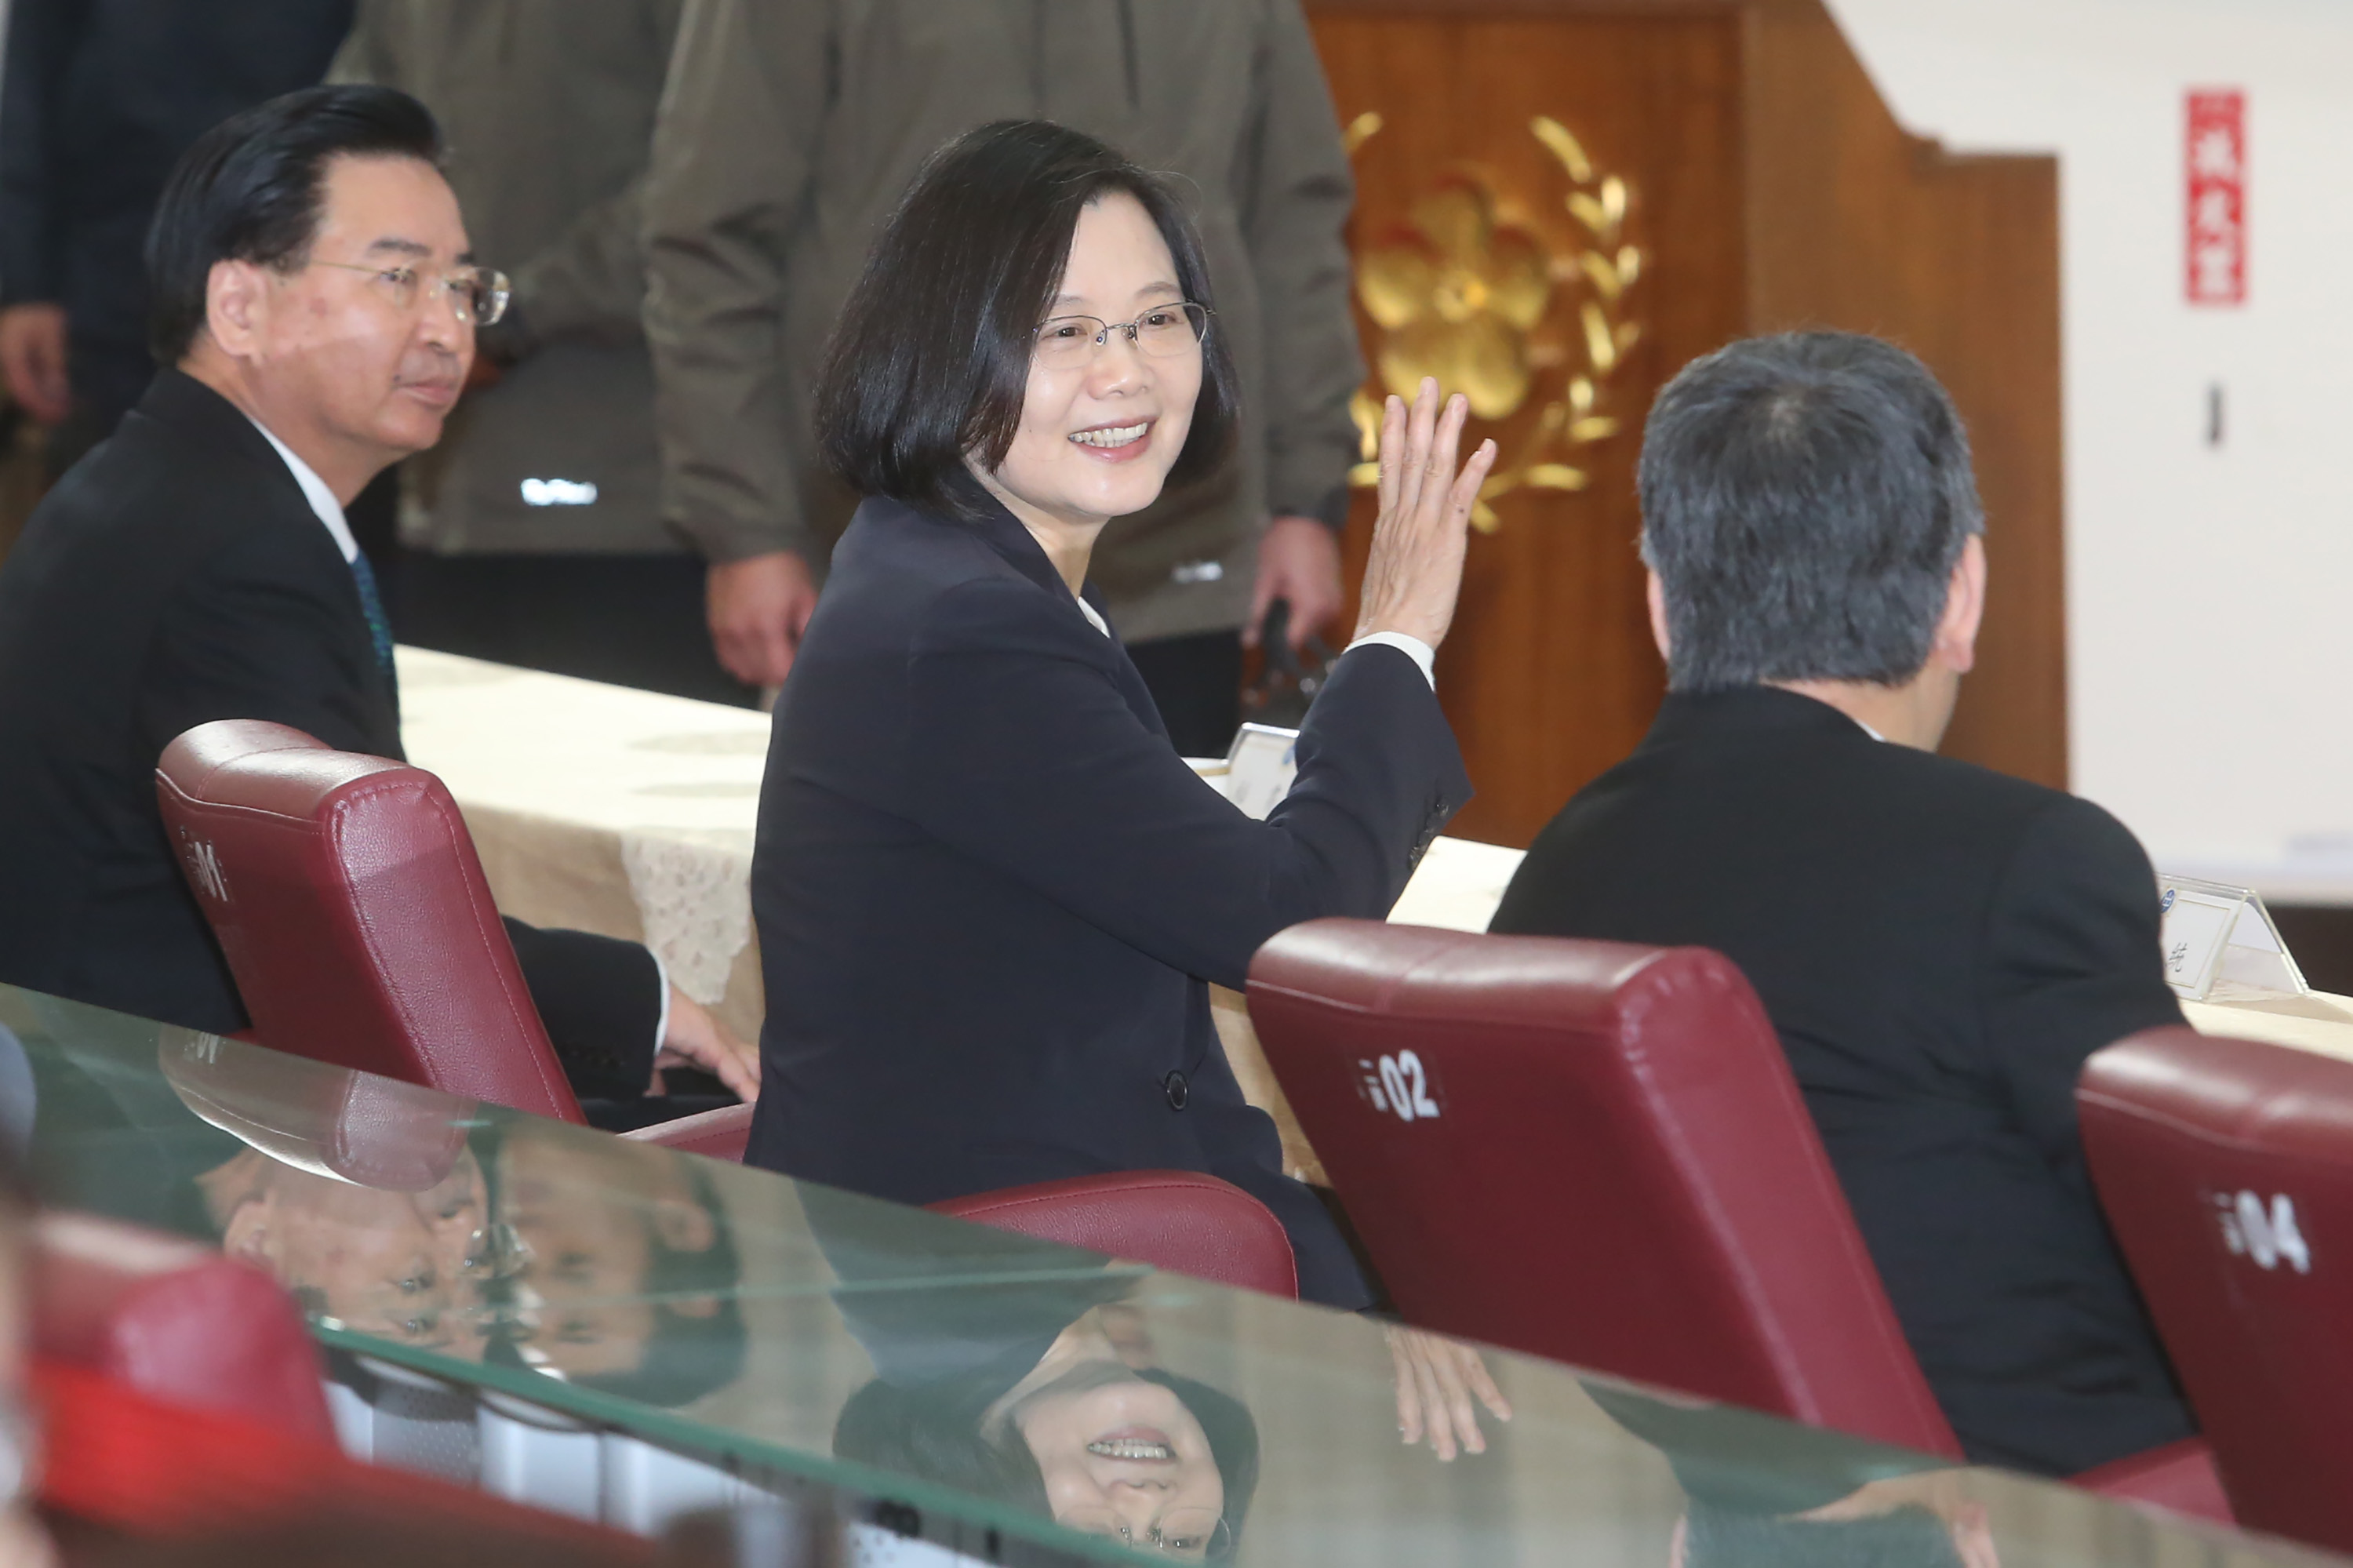 Taiwan president says island's defense budget to grow, given China pressures